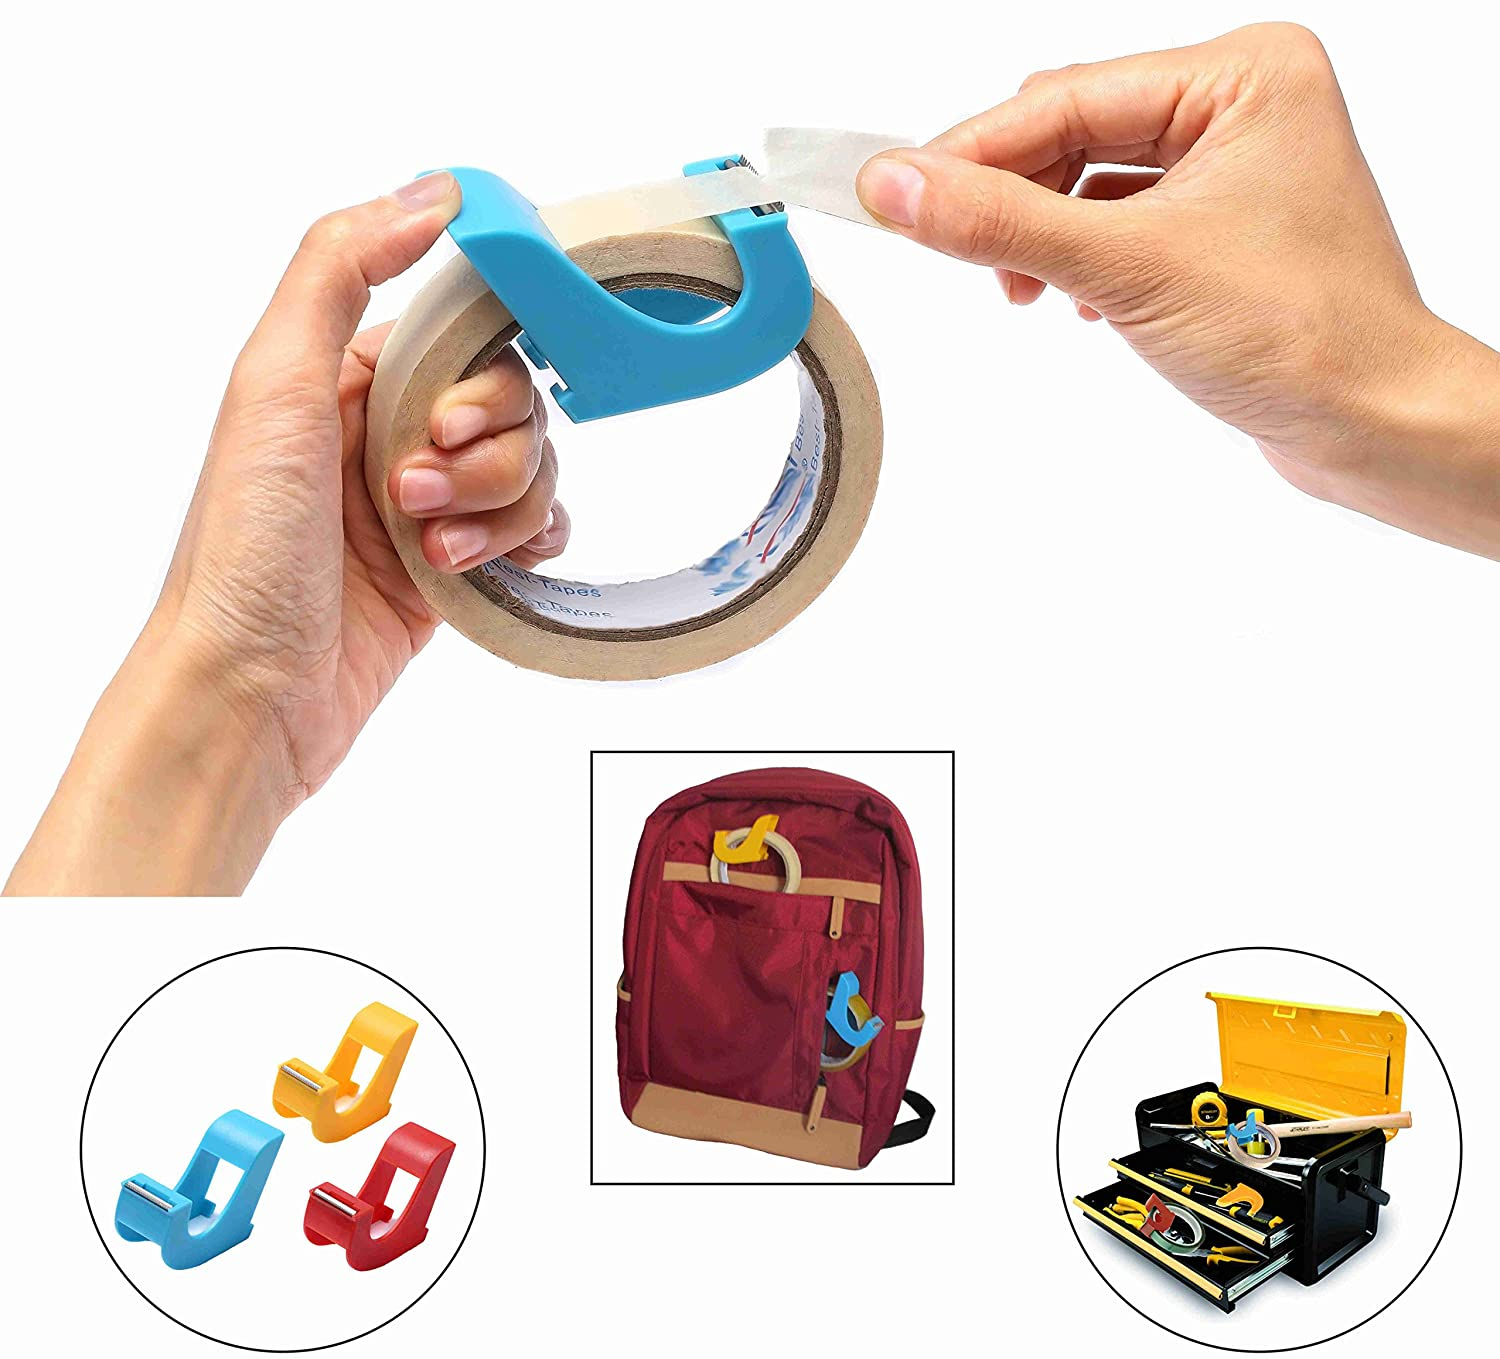 Masking Tape Dispenser(2 pcs) Portable Tape Gun, Revolutionary Desktop Tape Dispenser, 1 Core, Lightweight, Non occupying space, Blue, Red, Yellow 1 Core amdohai factory